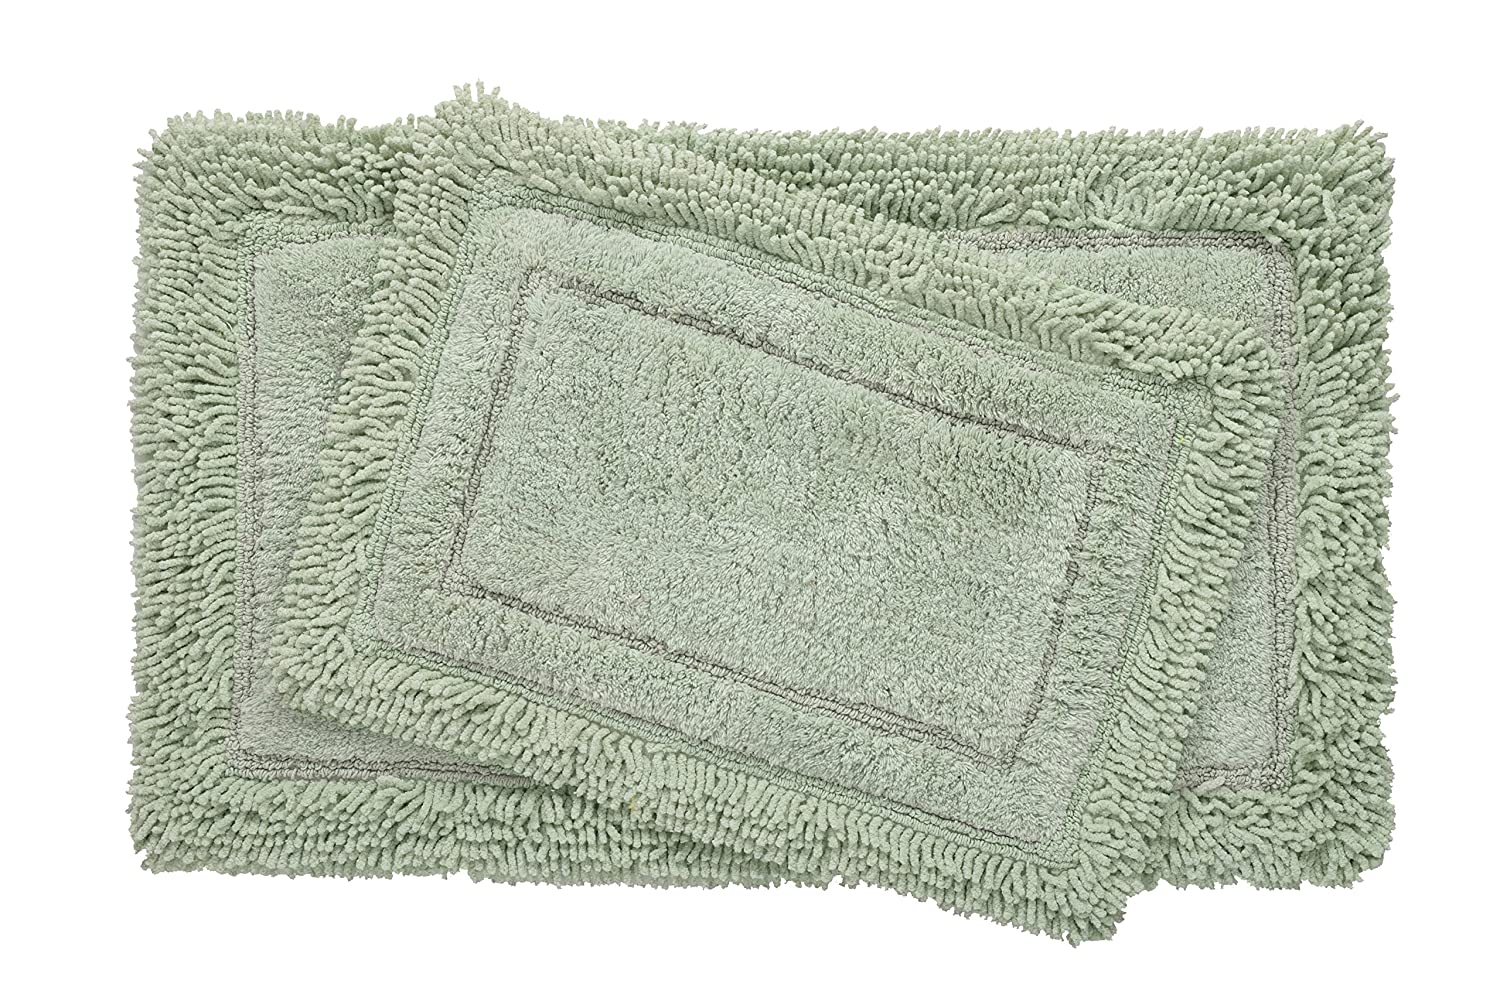 Bed Bath Fashions Savoy Shaggy 2 Piece 100% Cotton Bath Rug Set with Non-Skid Spray Latex Backing - Super Soft Luxurious Plush Shower Mats - 6 Colors (Sage)